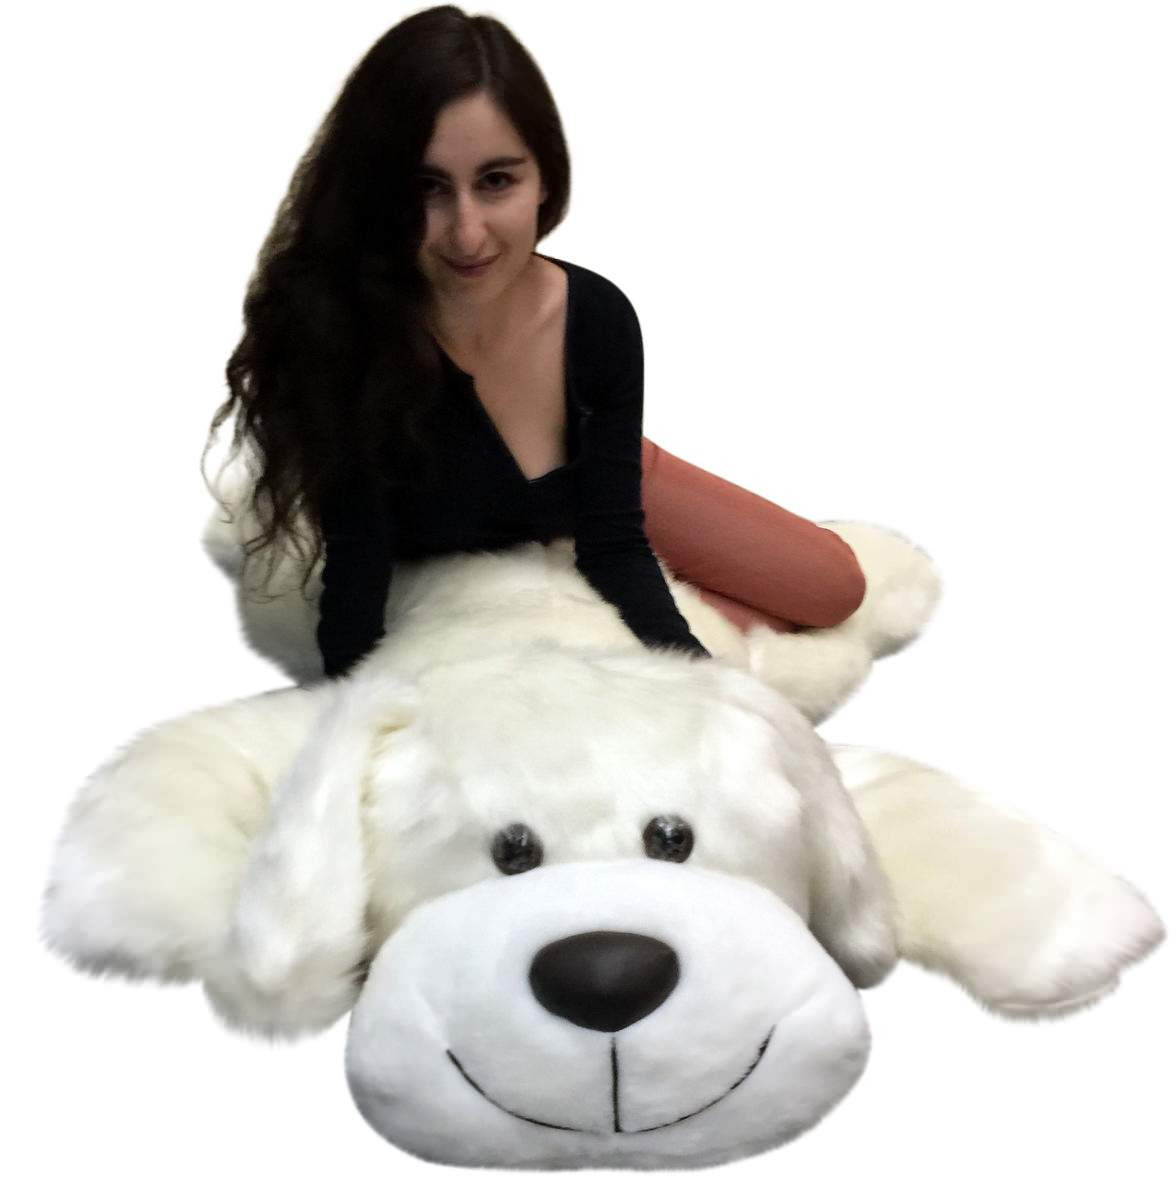 american made giant stuffed 5 foot dog 60 inch soft large plush puppy white color big plush. Black Bedroom Furniture Sets. Home Design Ideas